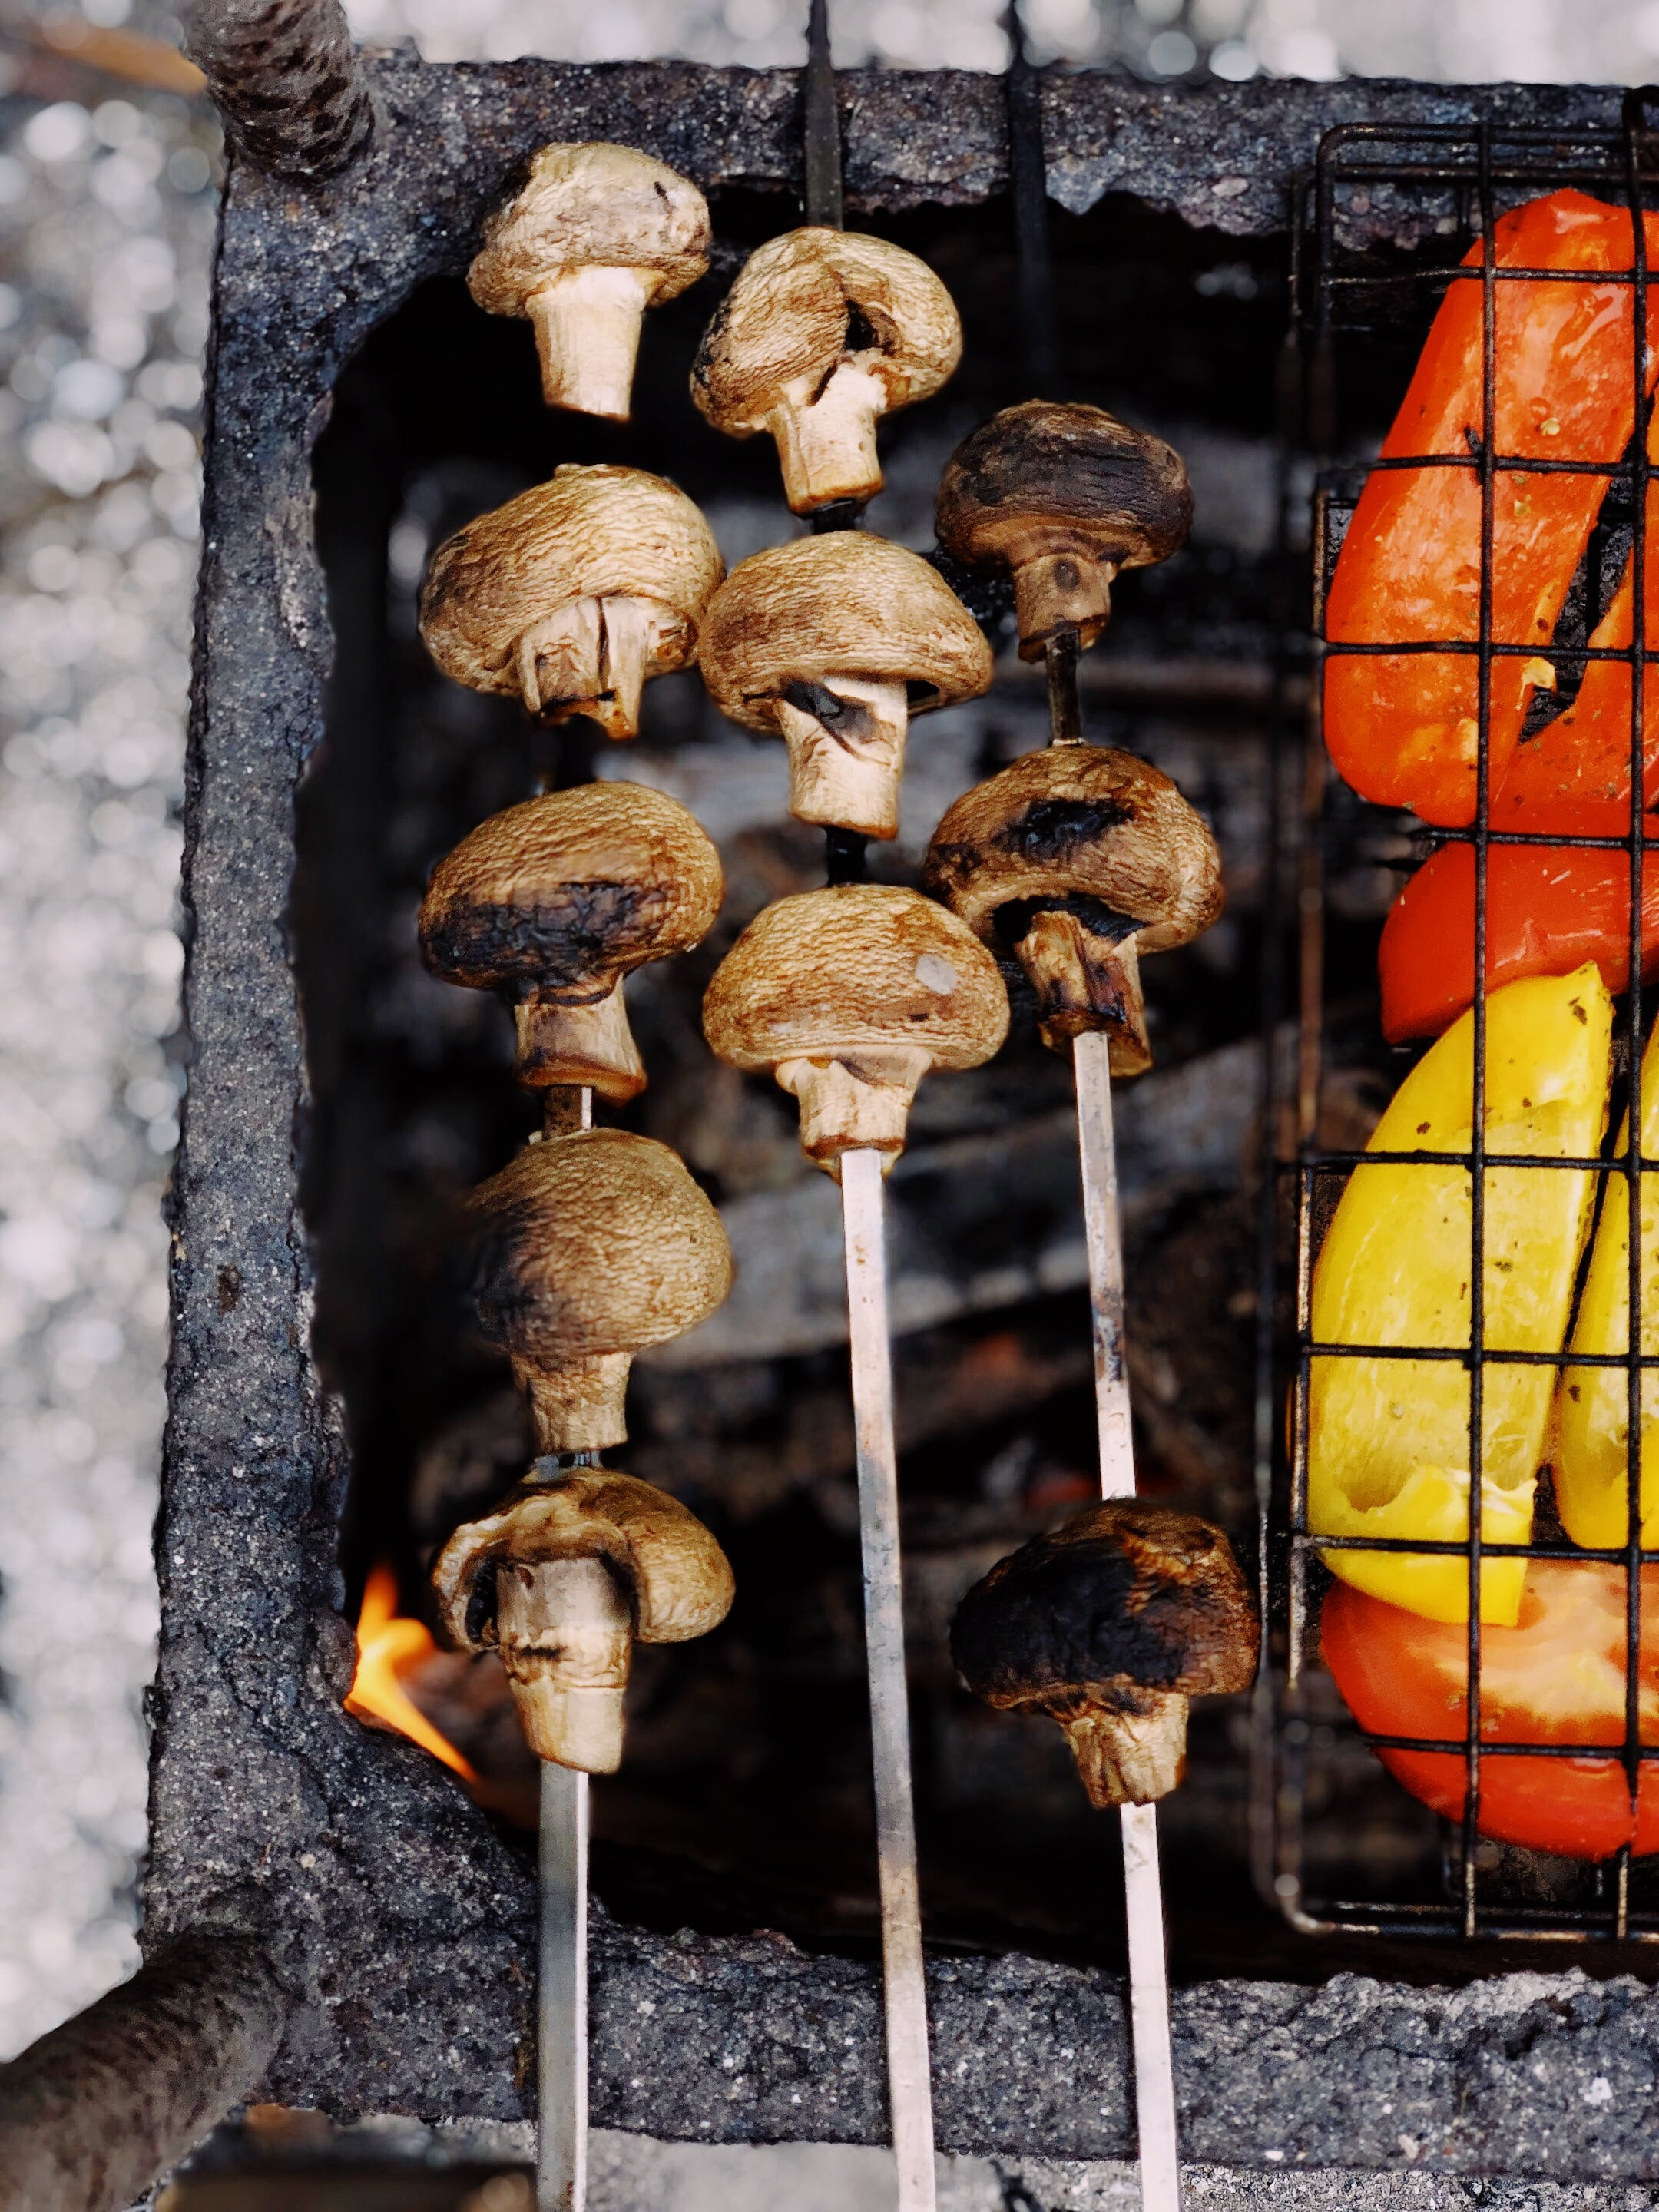 Grilled Mushrooms On Charcoal Grill   Stock Photo Image 2160x2880